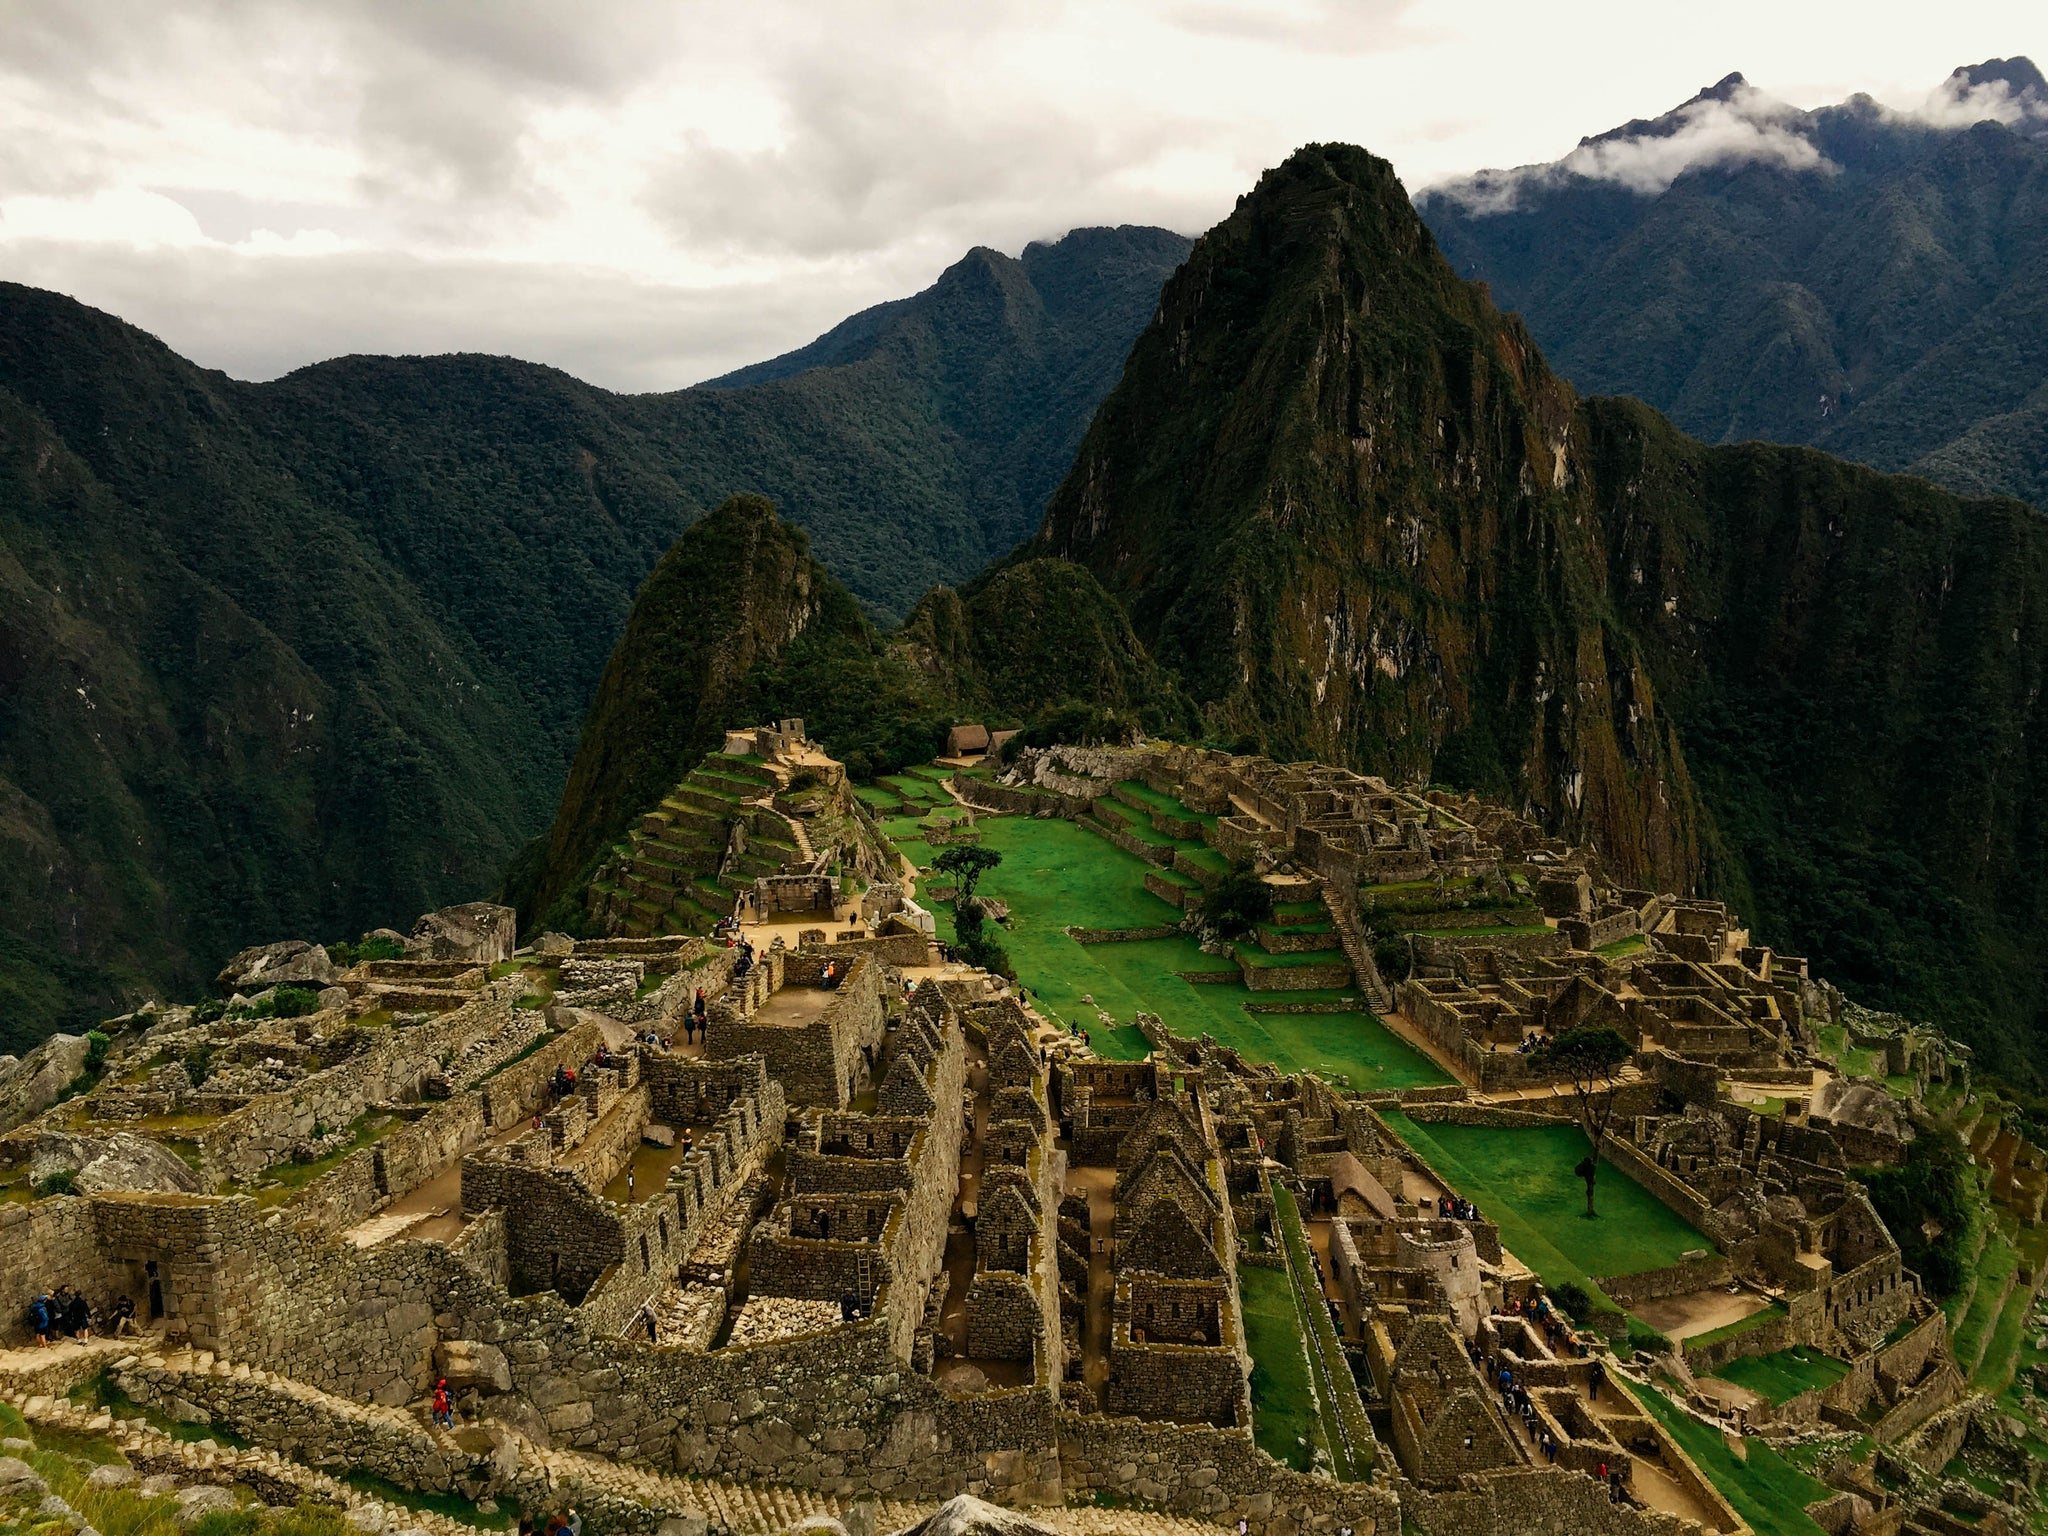 Kalaki Riot Travel Photography: Machu Piccu in Peru